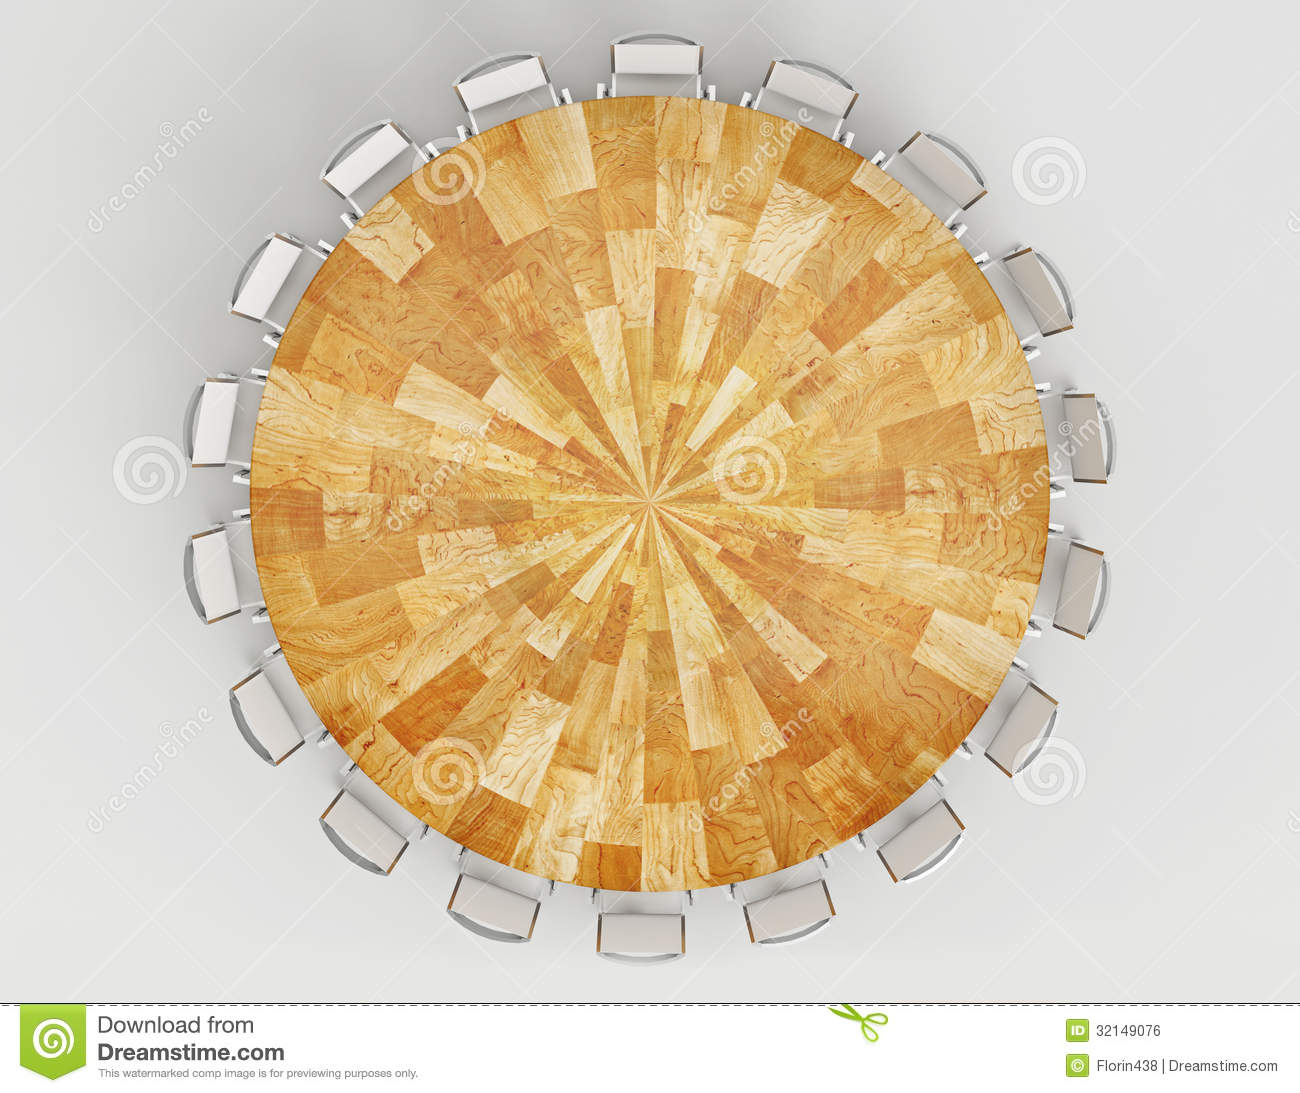 Round table 3d rendered top view